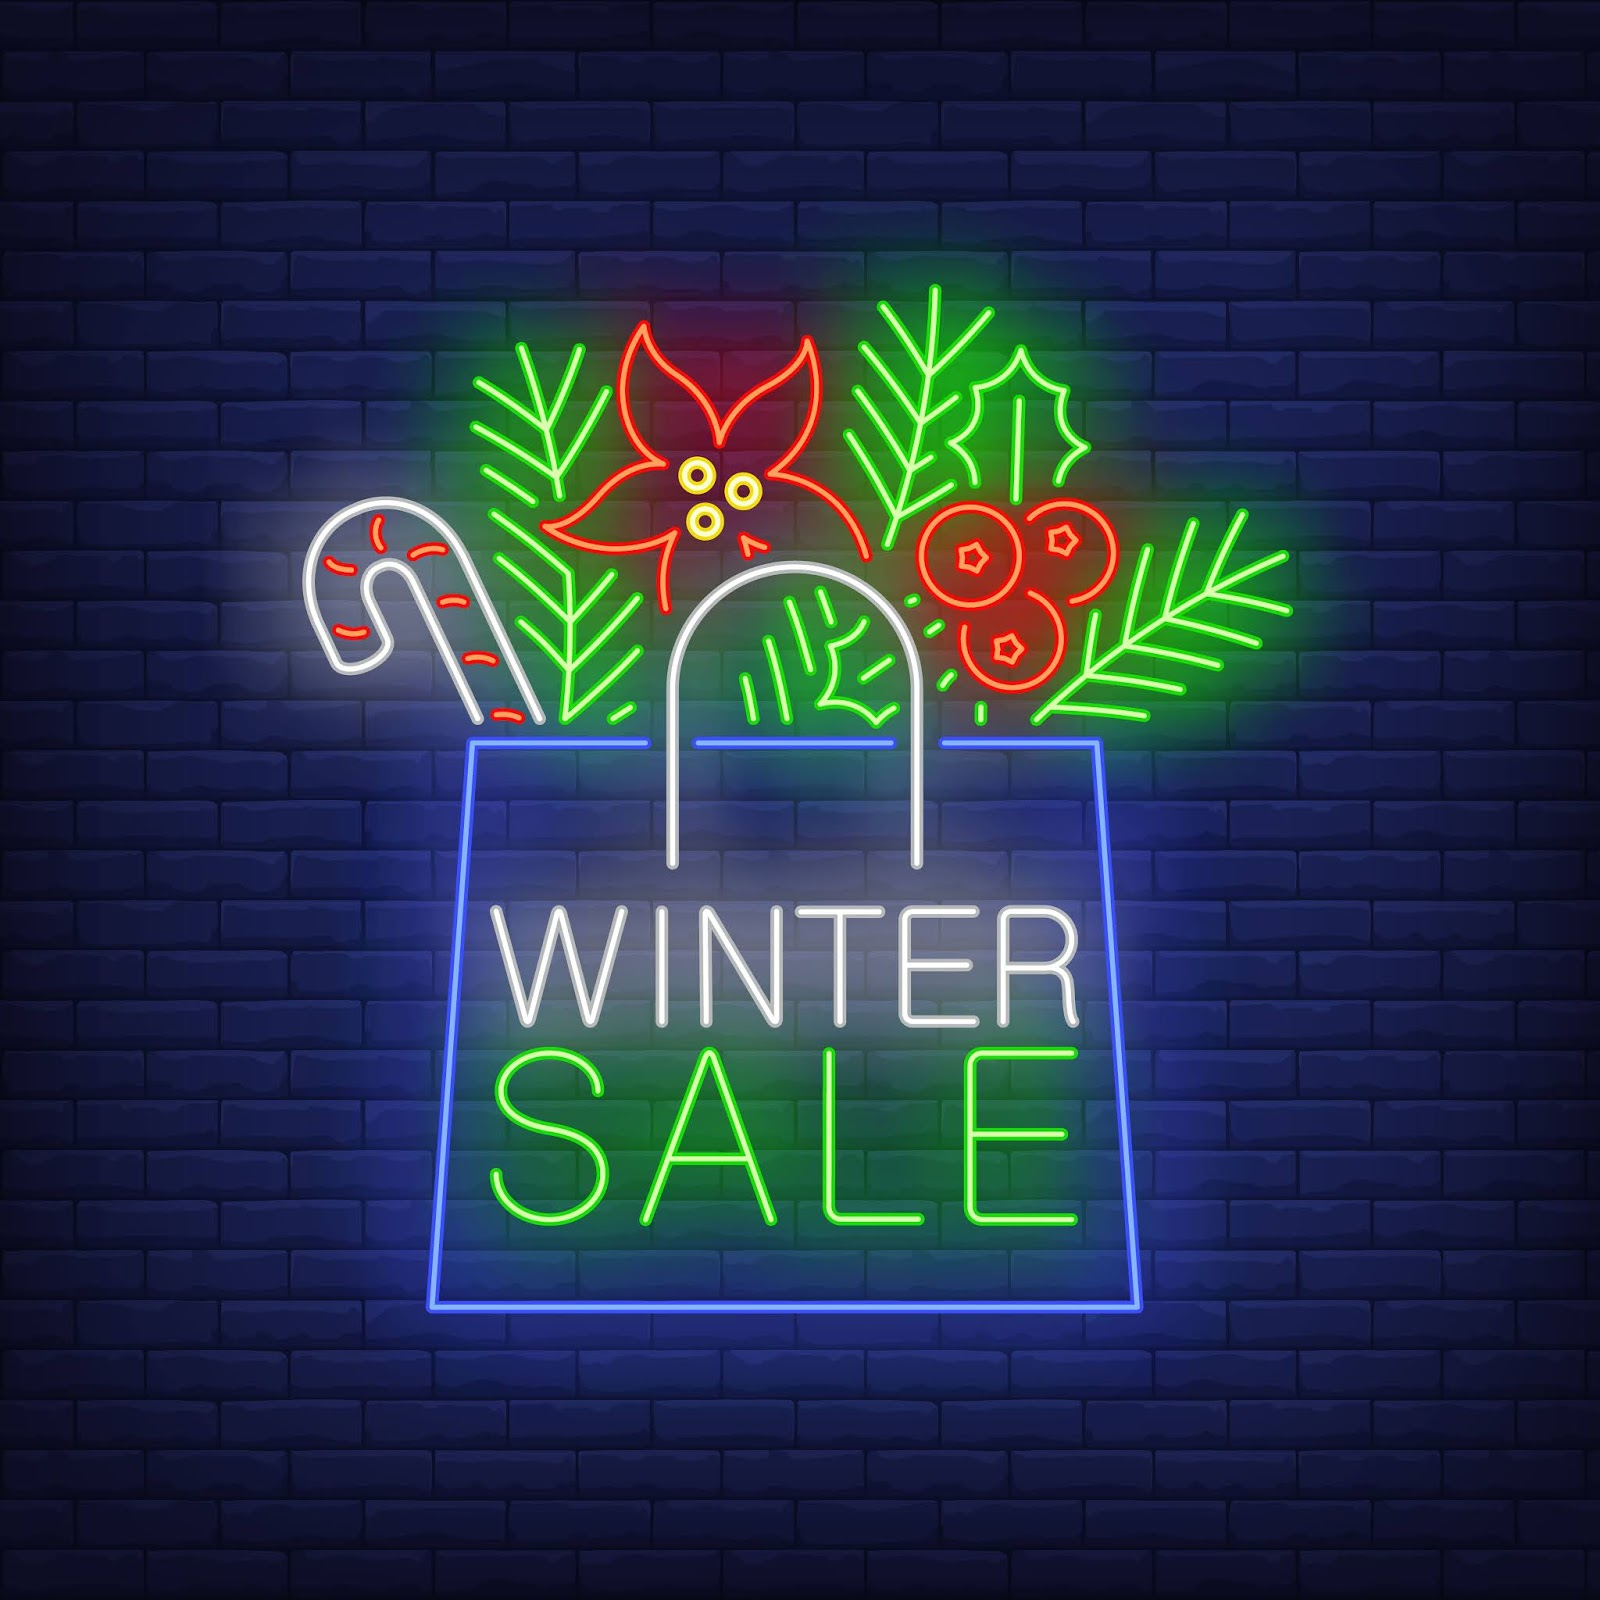 Winter Sale Banner Paper Bag Neon Style Free Download Vector CDR, AI, EPS and PNG Formats